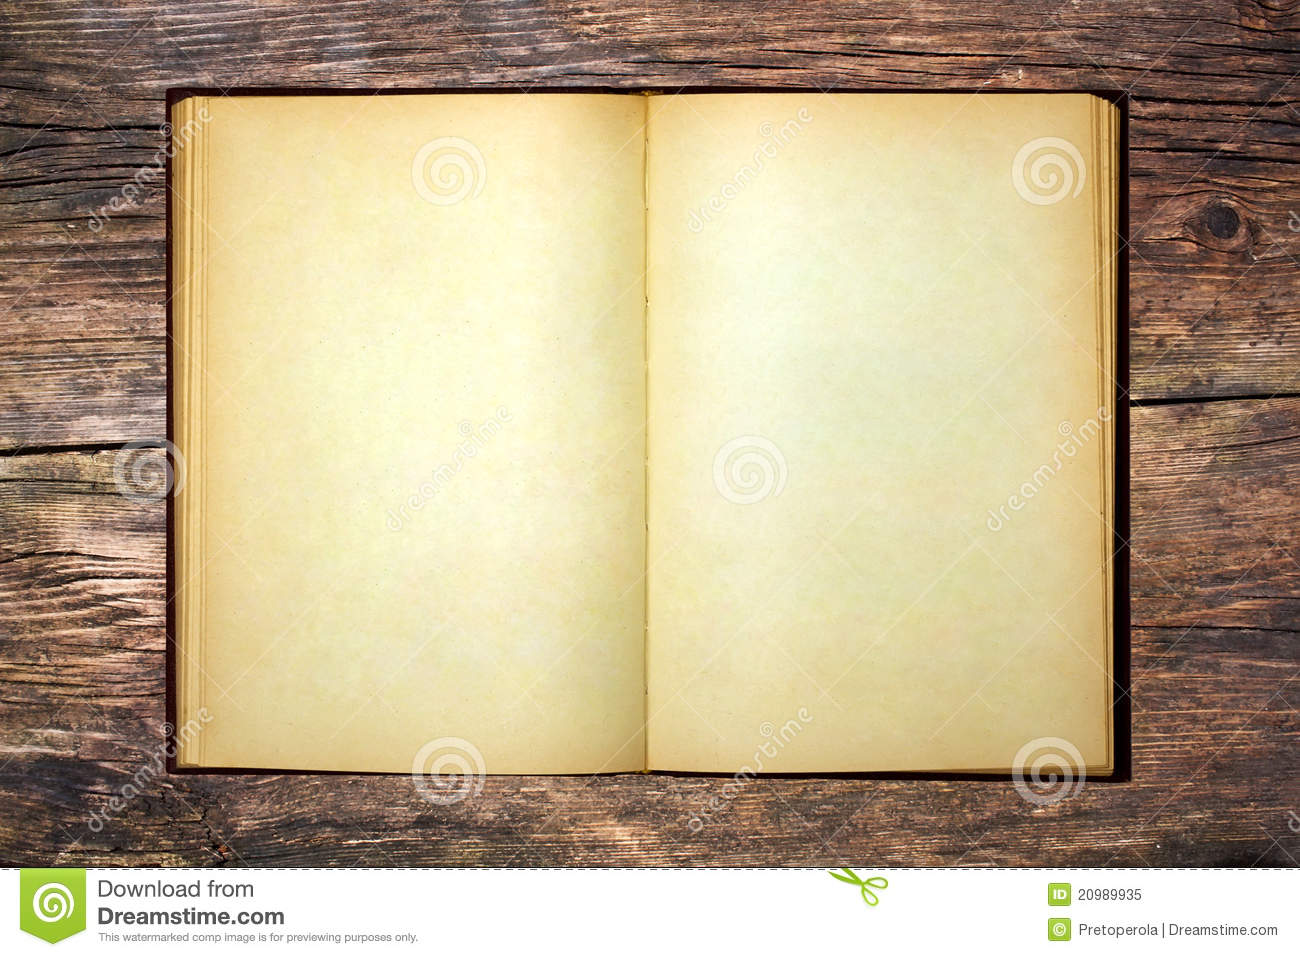 The Old Open Book Royalty Free Stock Photo - Image: 20989935